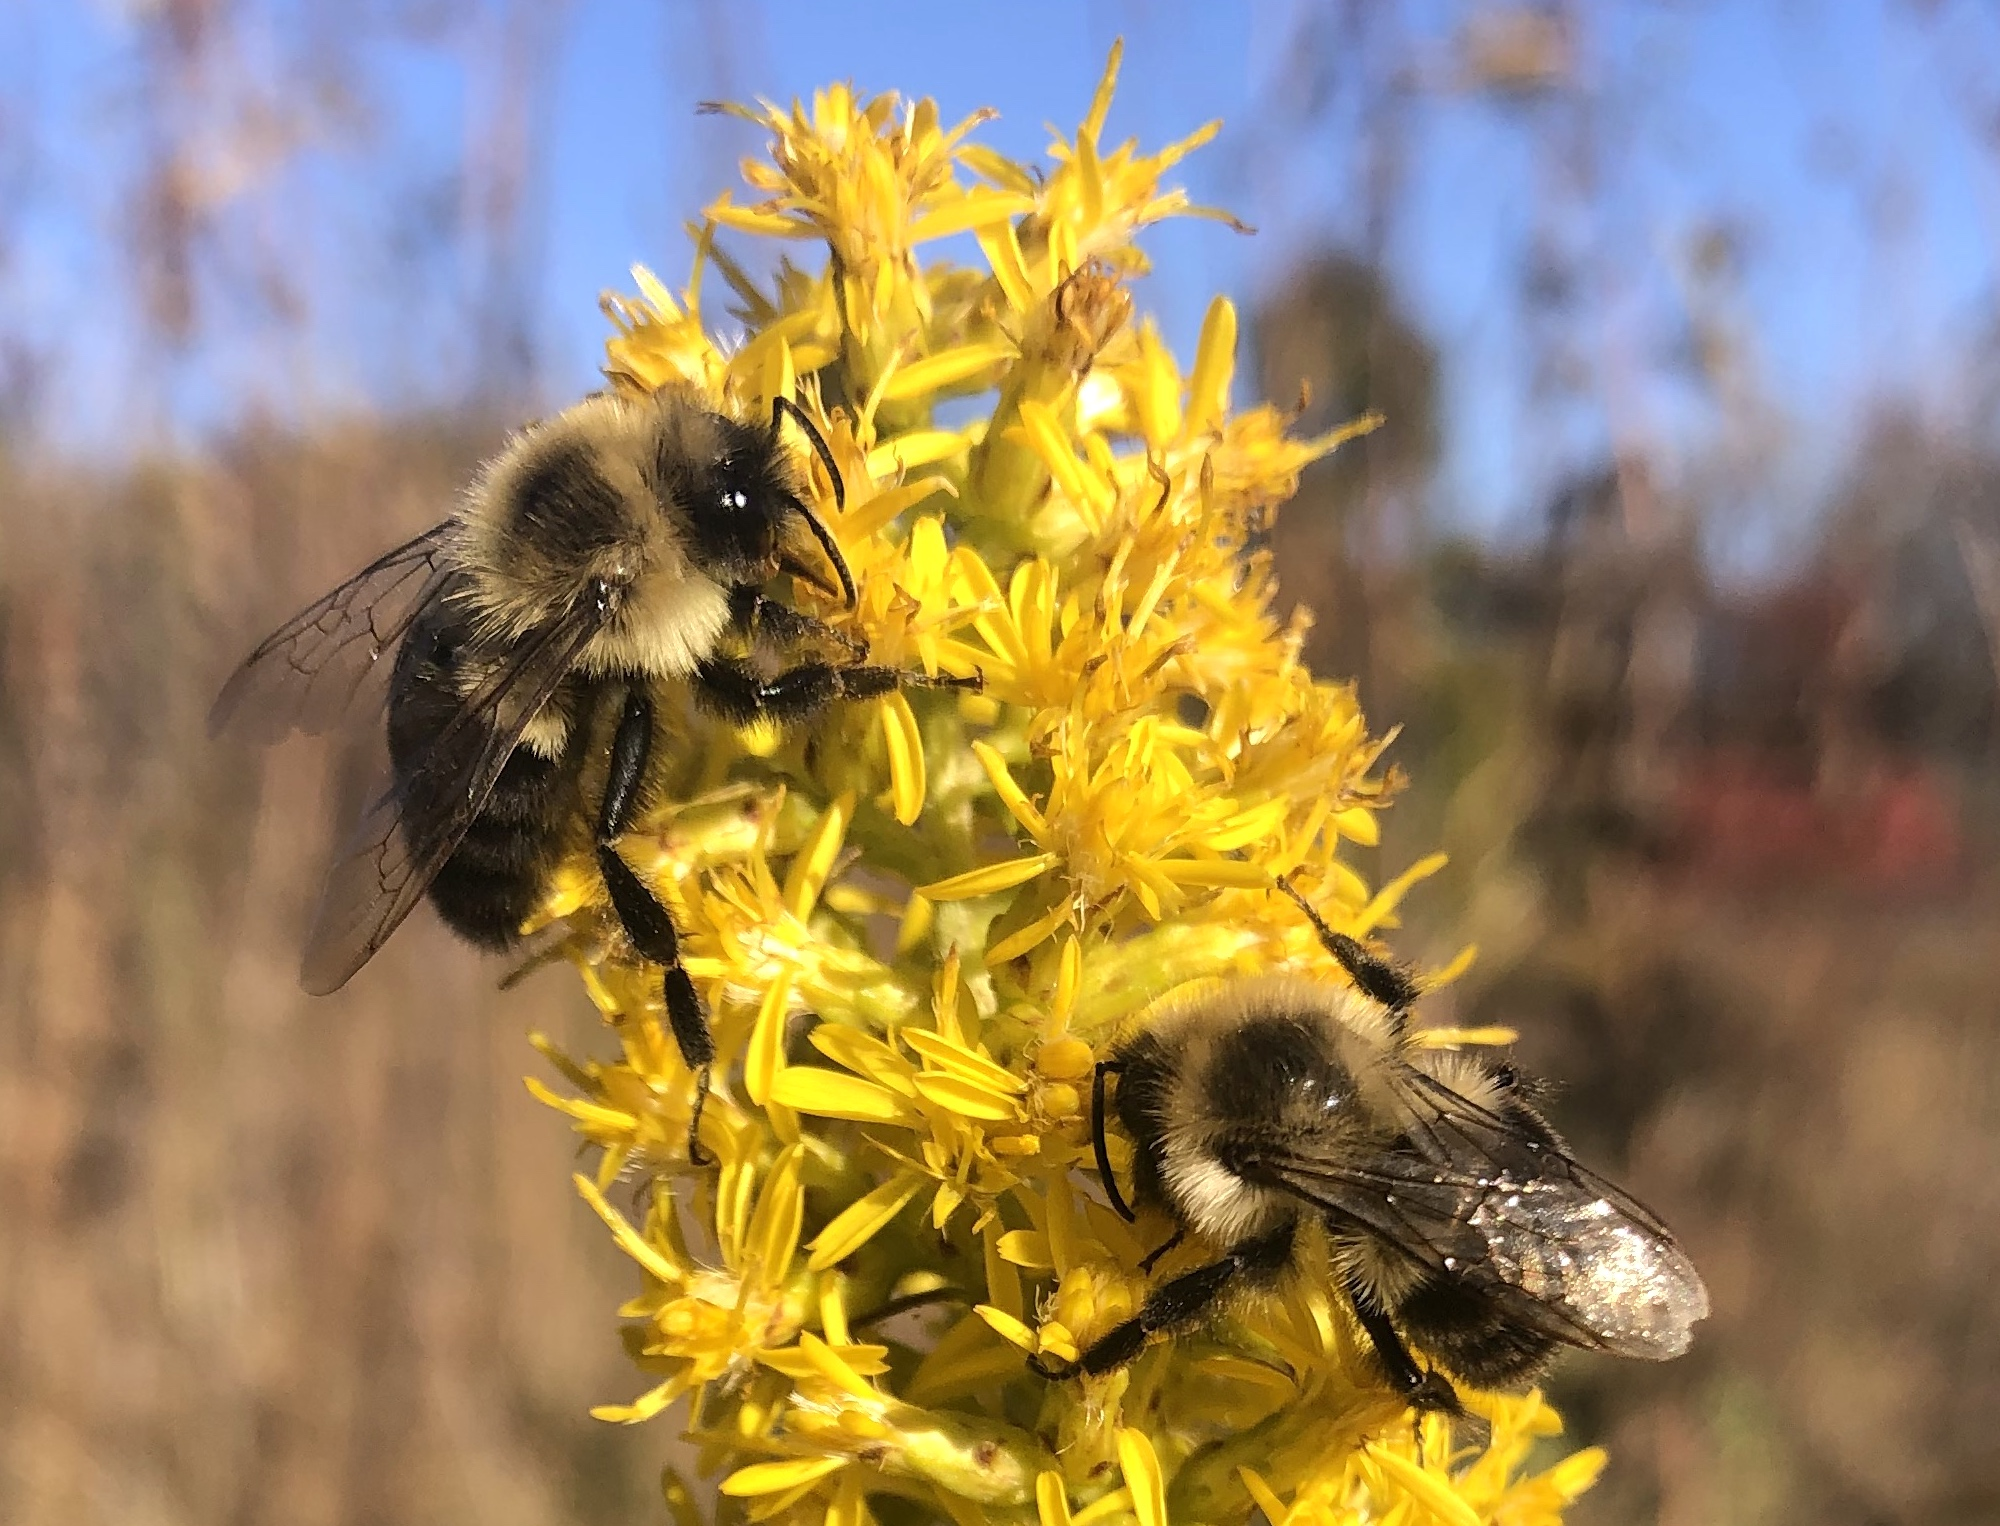 Bumblebees on Showy Goldenrod on October 13, 2020.